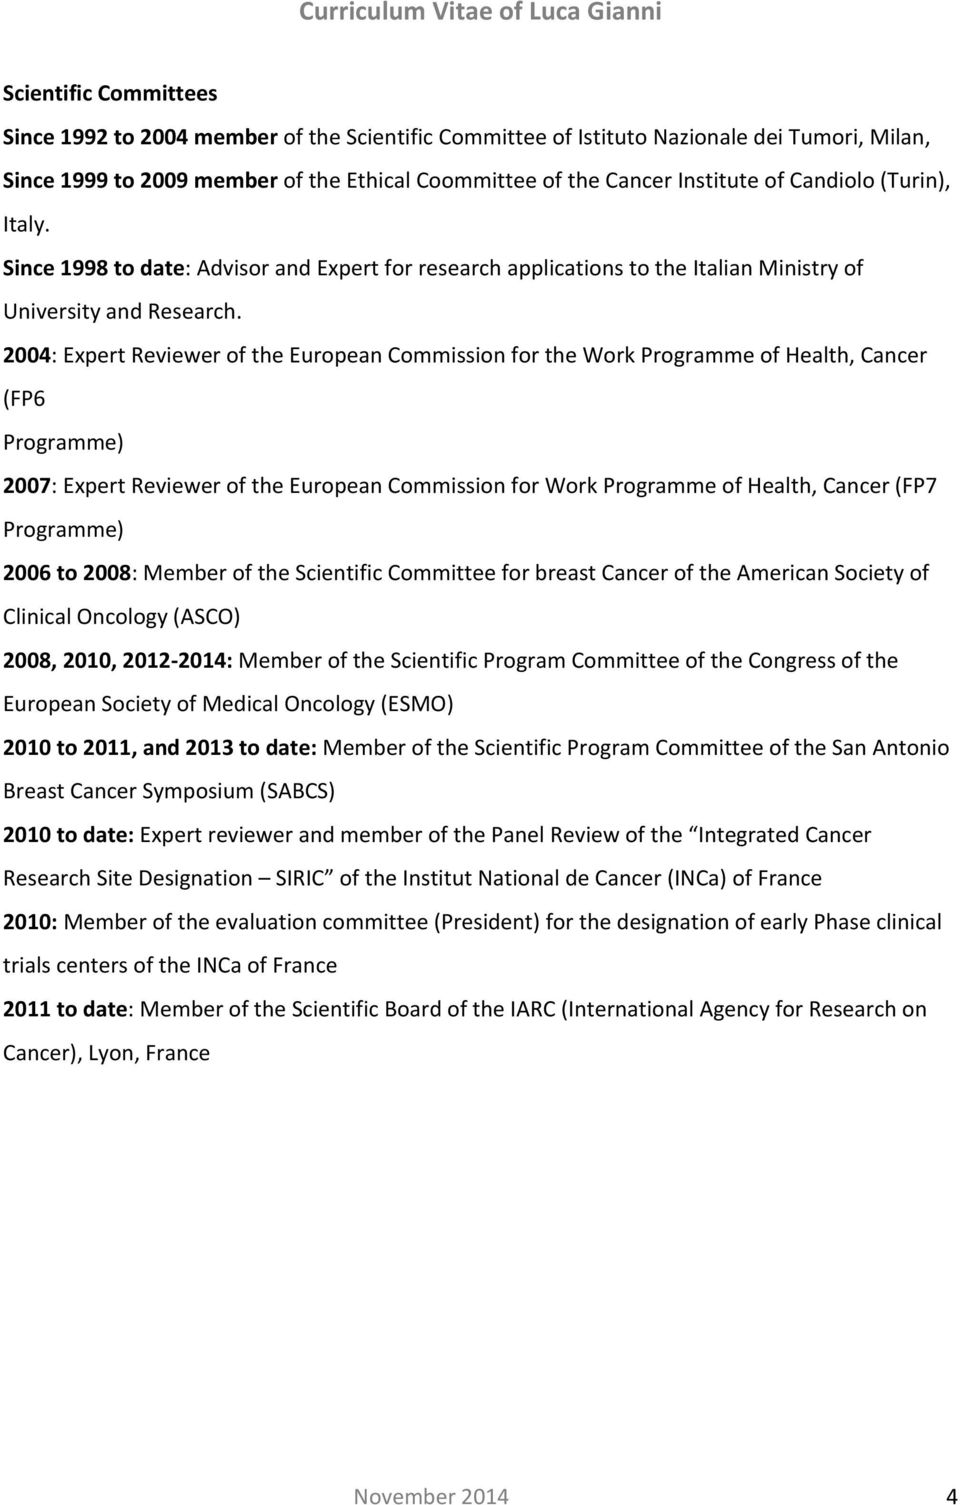 2004: Expert Reviewer of the European Commission for the Work Programme of Health, Cancer (FP6 Programme) 2007: Expert Reviewer of the European Commission for Work Programme of Health, Cancer (FP7